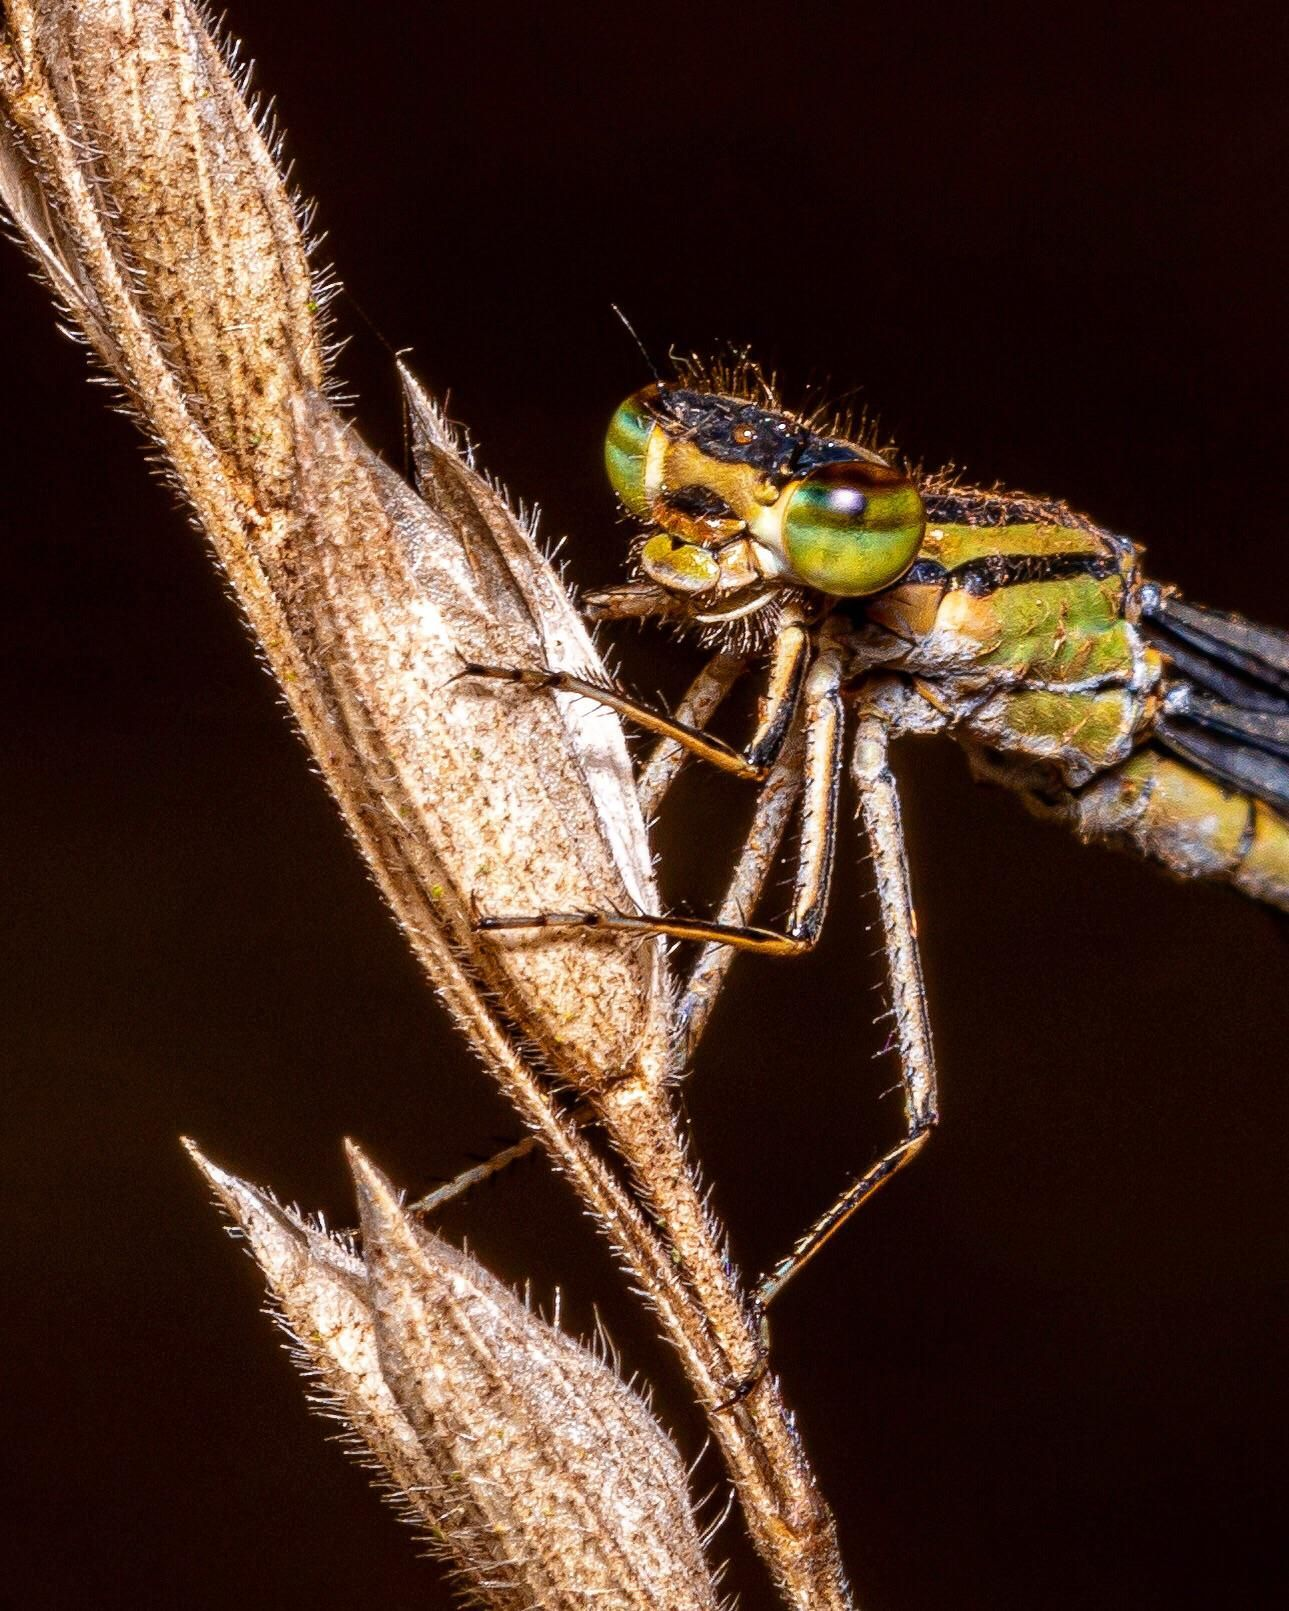 Itap Of A Damsel Fly Photo Background Editor Wallpaper